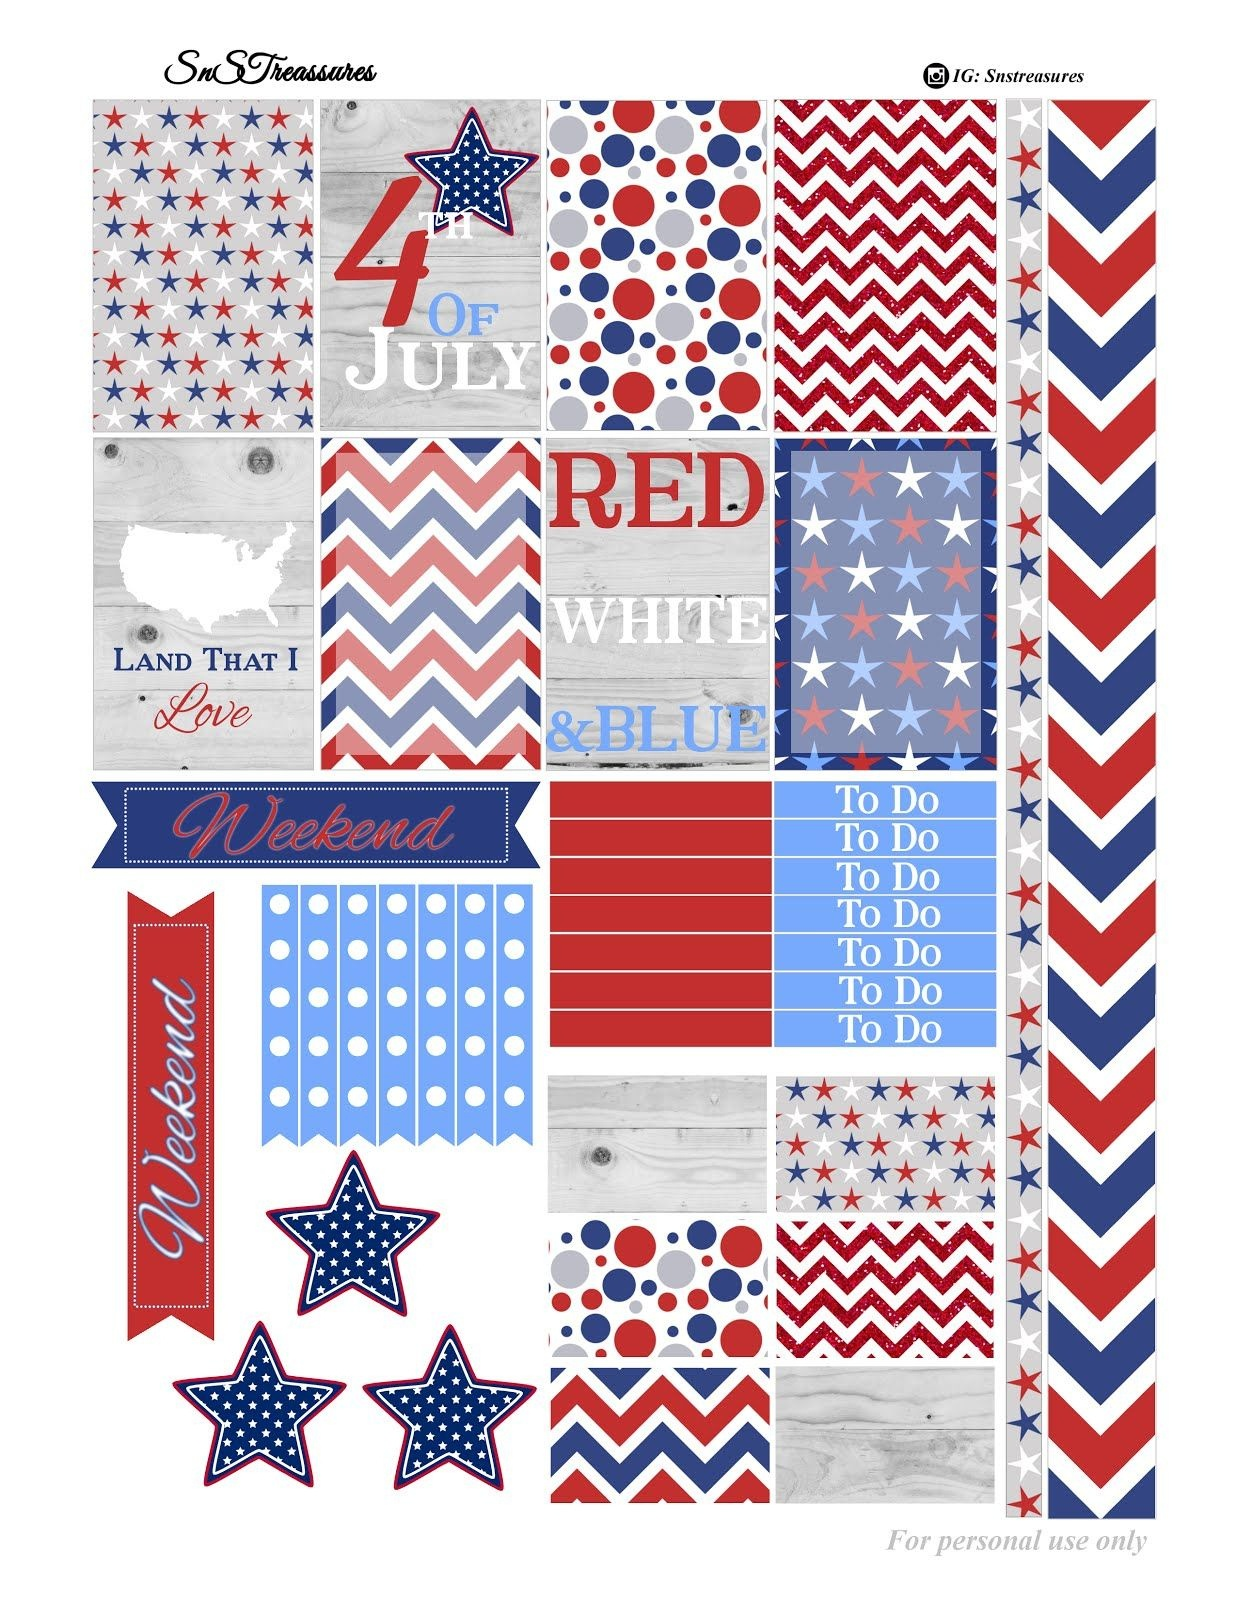 Free Fourth Of July Printable Planner Stickers | Home Office - Free Printable 4Th Of July Stationery